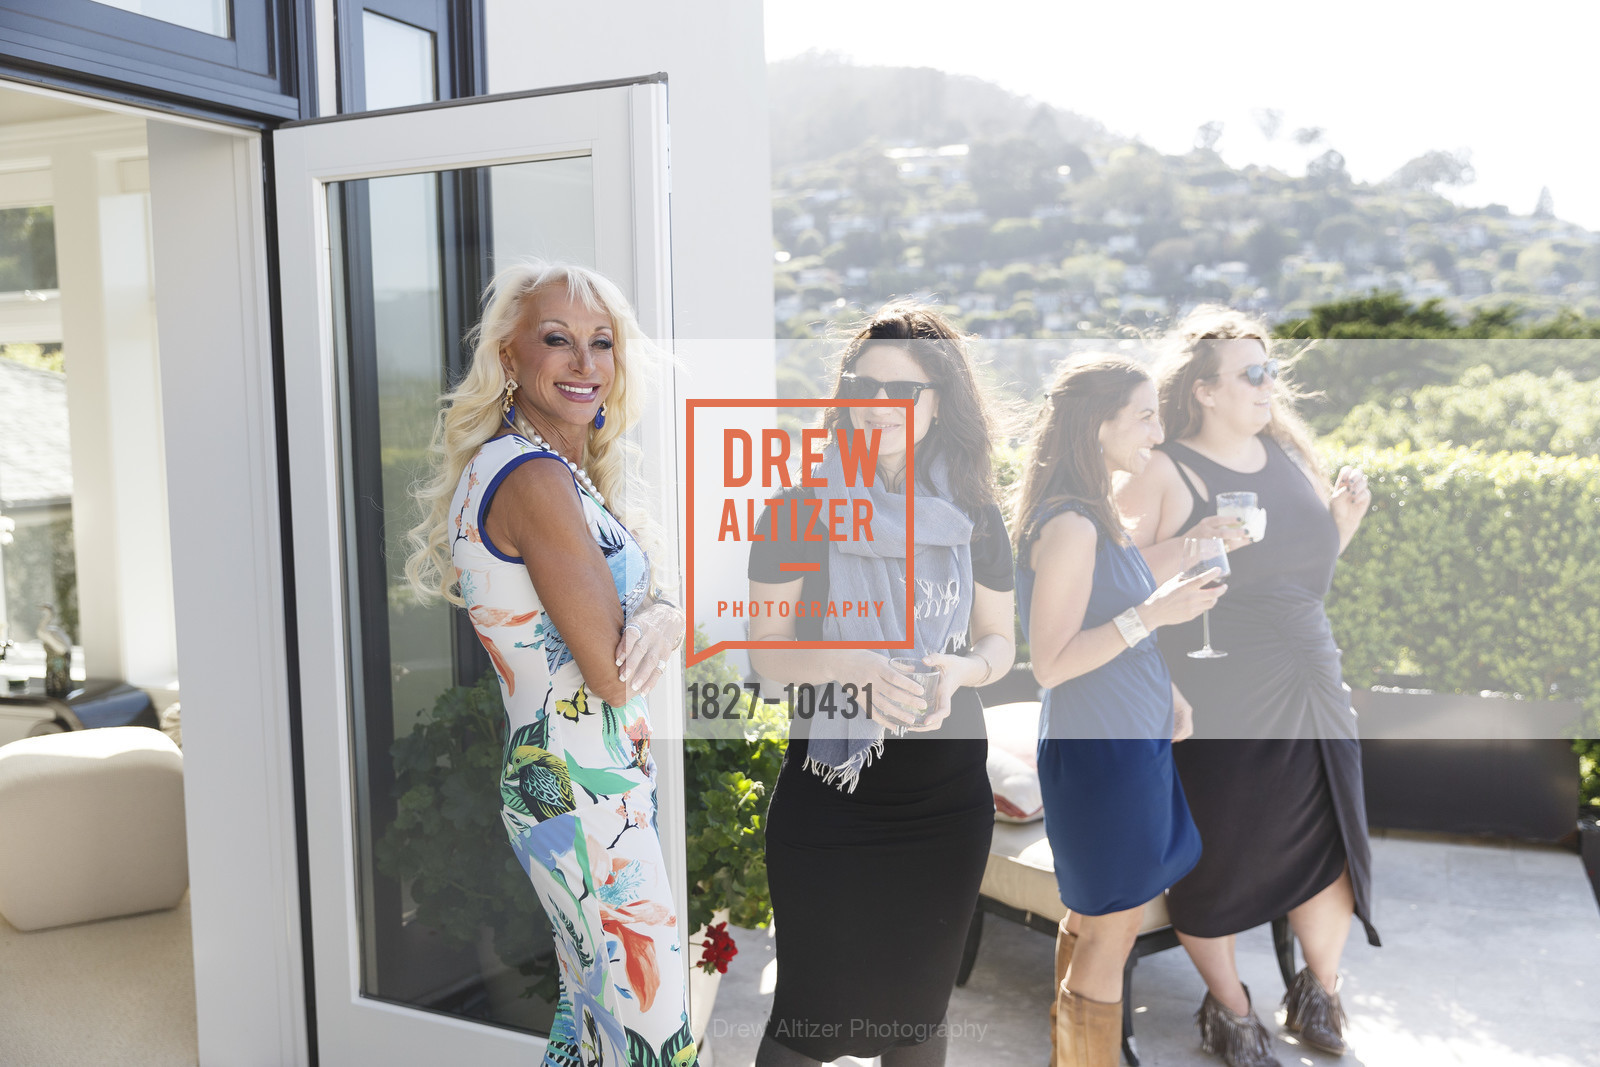 Daru Kawalkowski, Liz and Dan's Engagement Party, Private Residence, April 14th, 2018,Drew Altizer, Drew Altizer Photography, full-service agency, private events, San Francisco photographer, photographer california